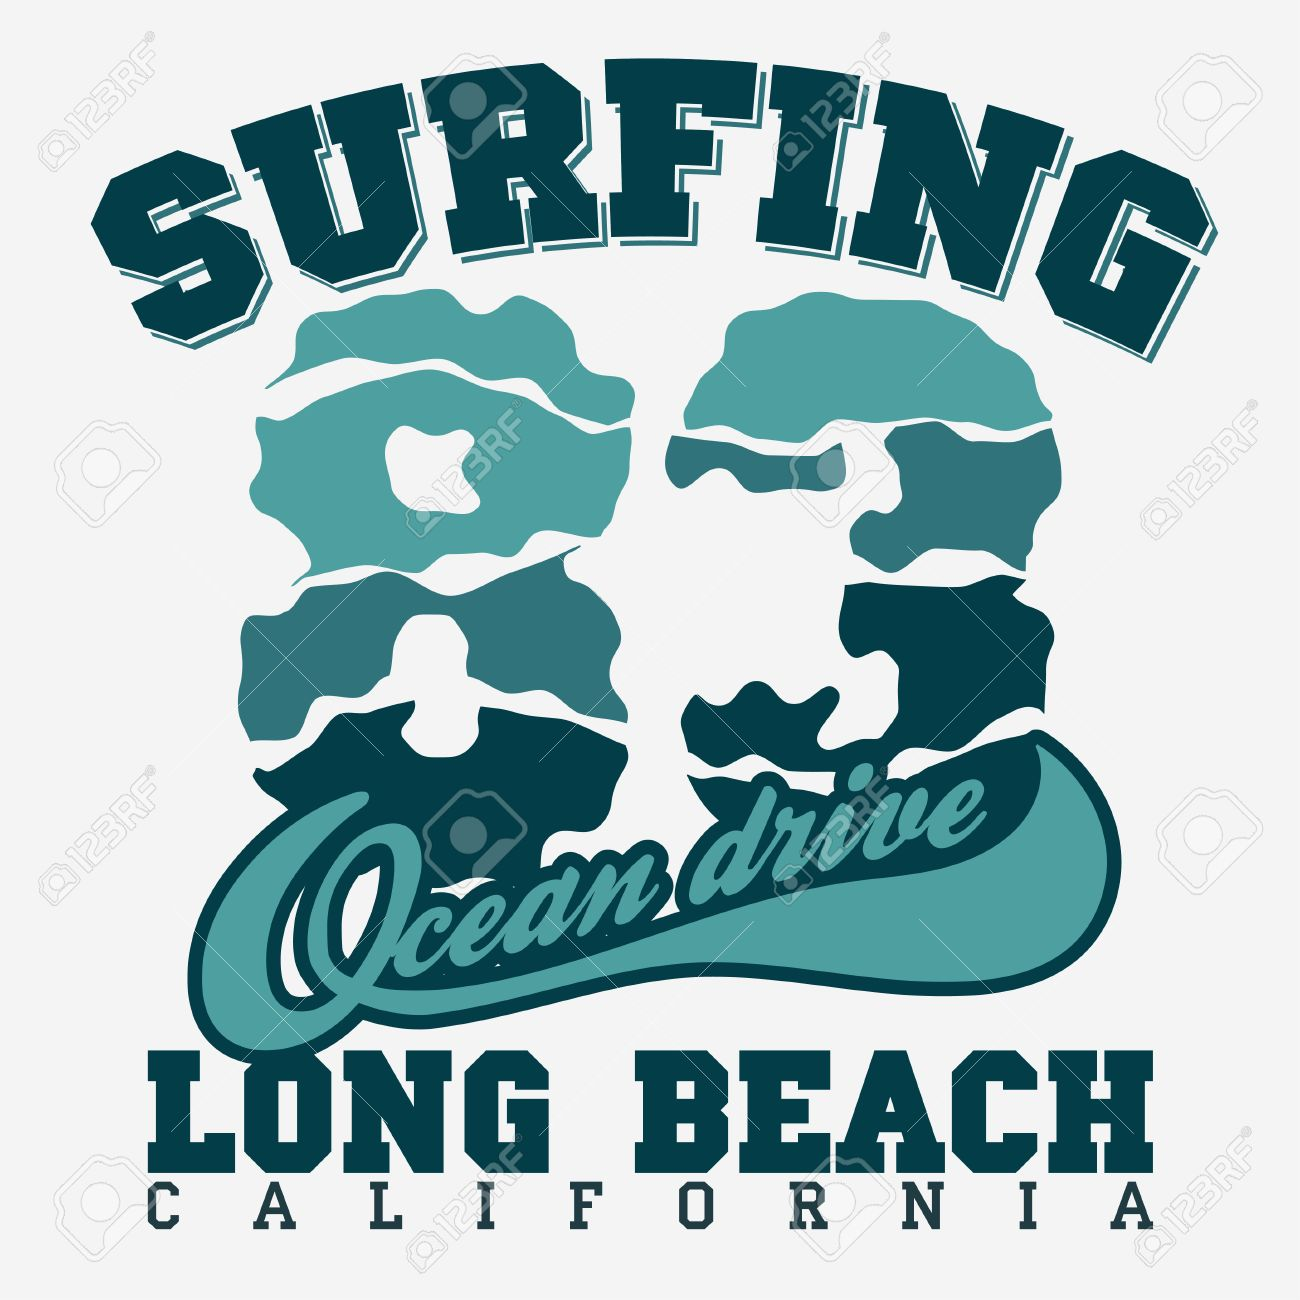 surfing t shirt graphic design long beach surfing california